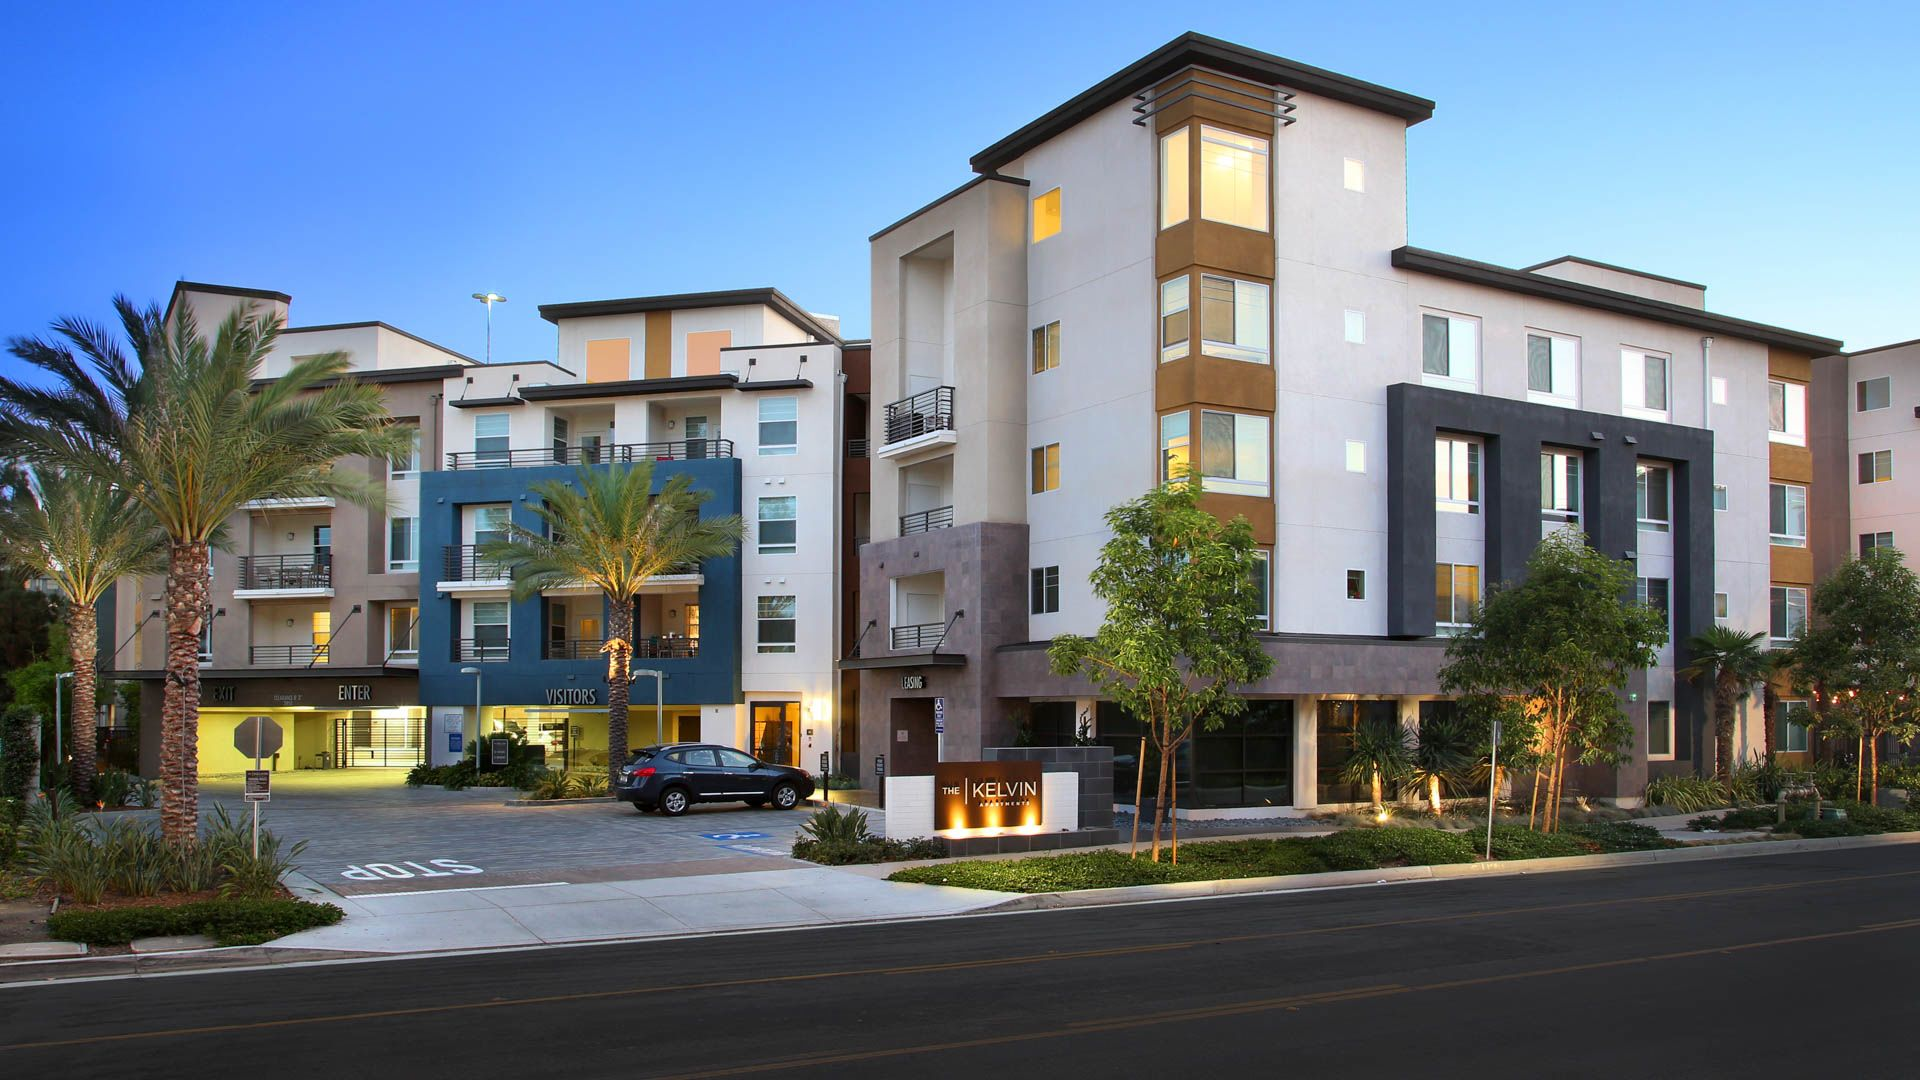 Studio Apartments For Rent Irvine Ca